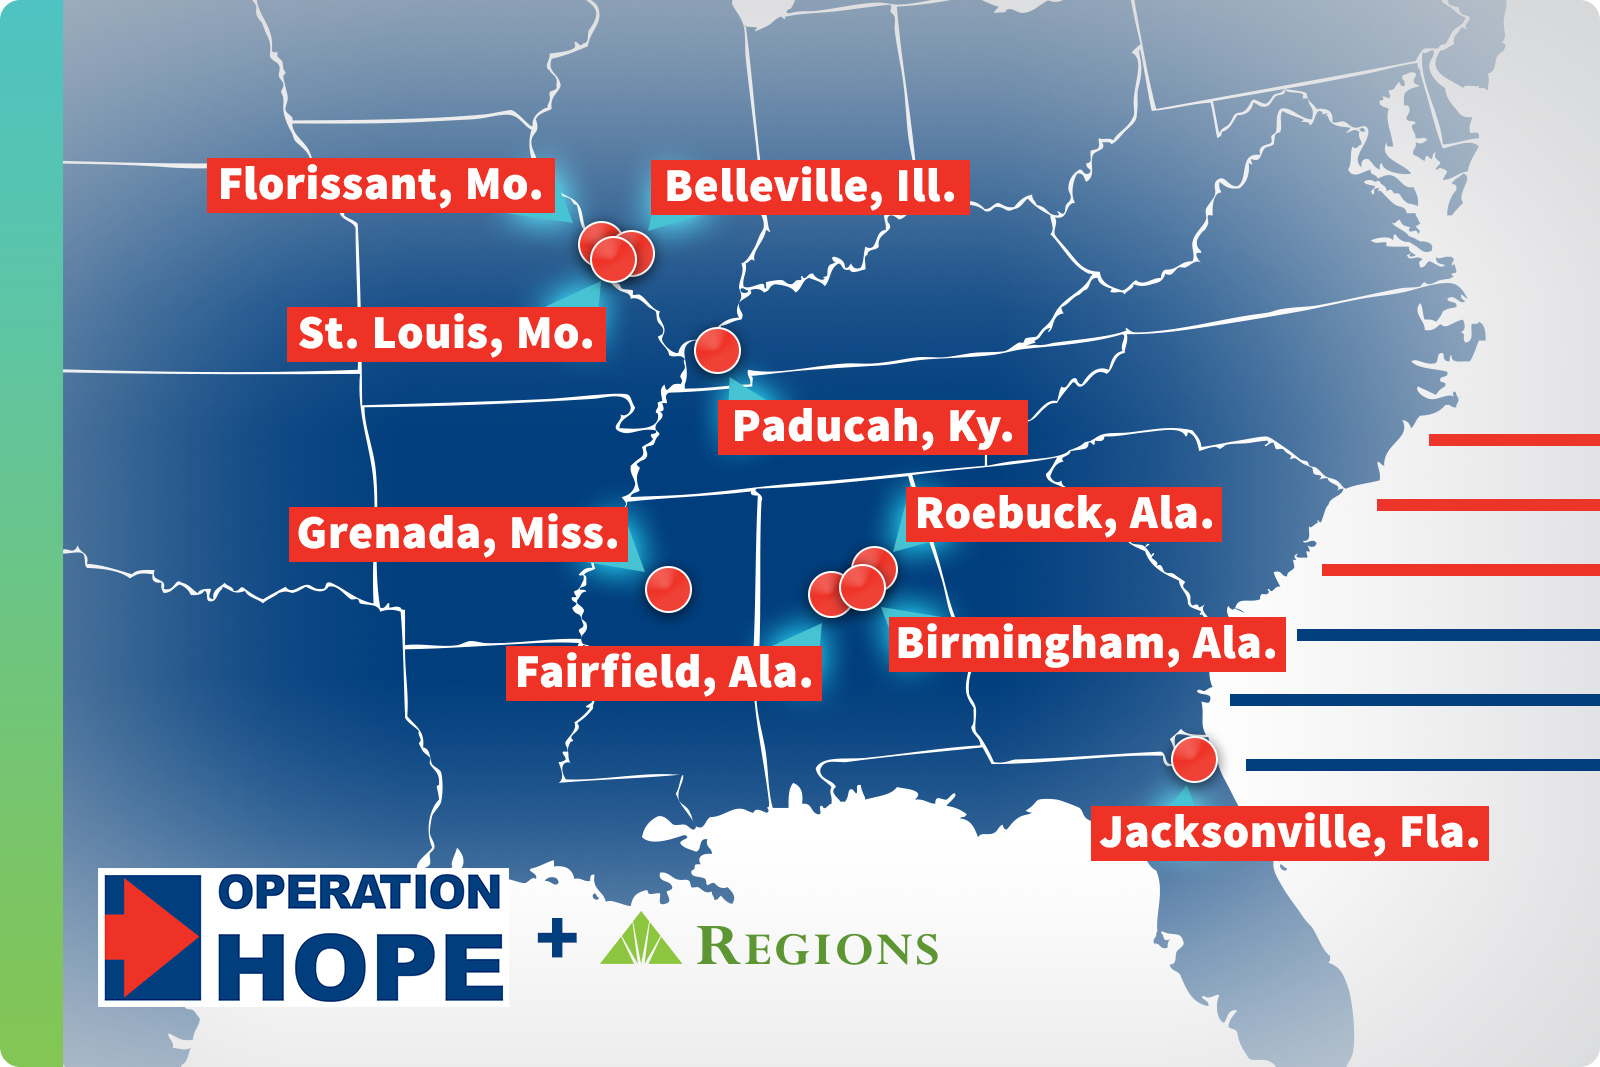 Regions supports HOPE Inside counseling and workshops in cities across the Southeast and Midwest.